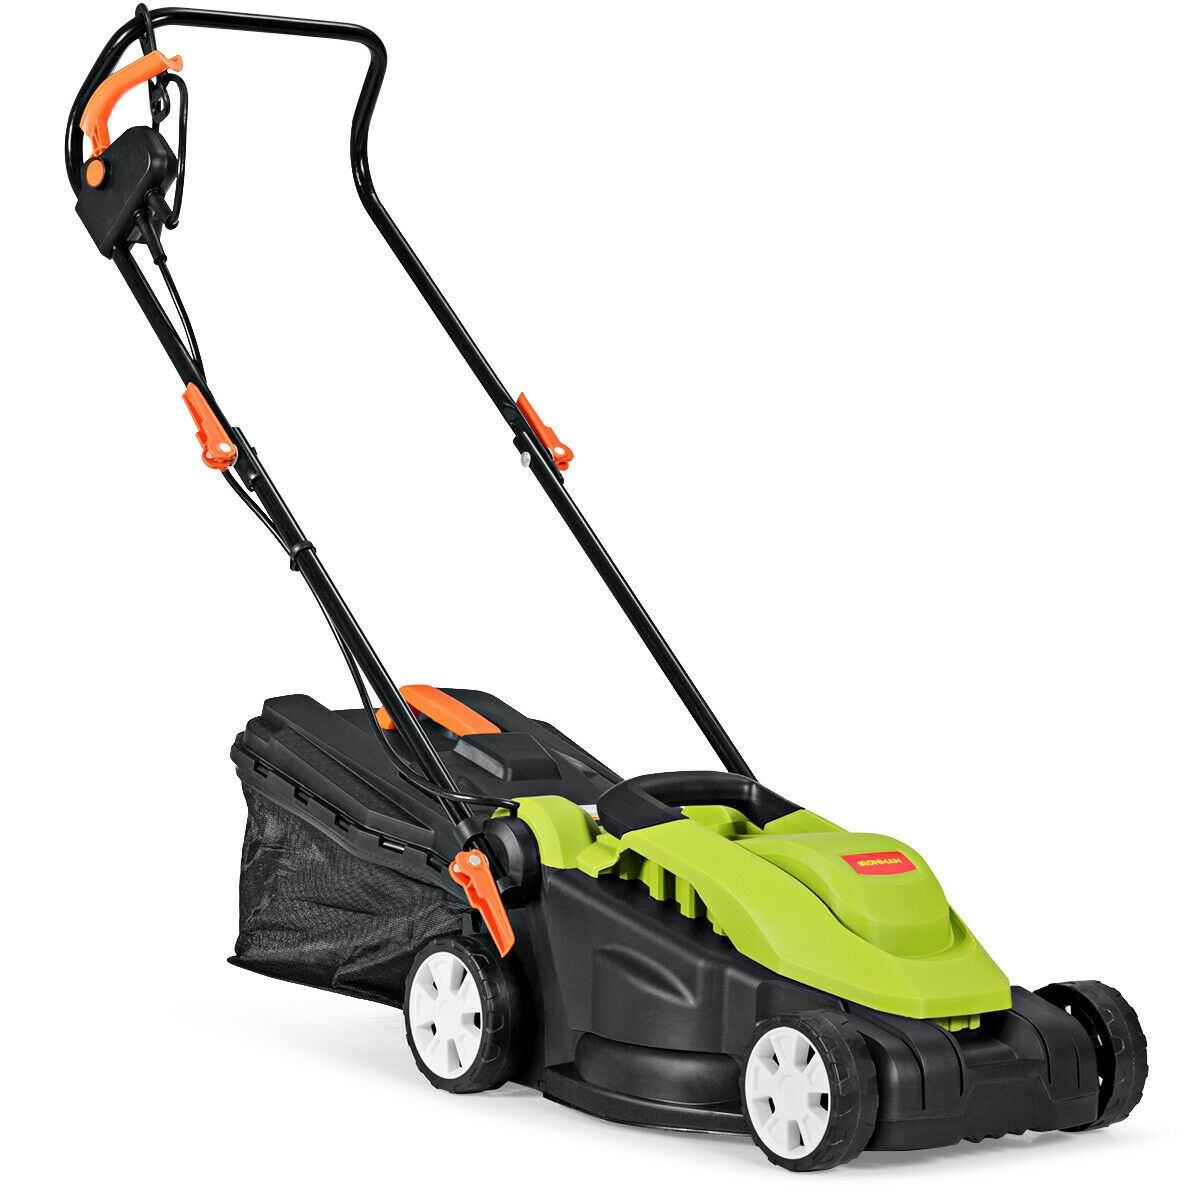 14-Inch 10 Amp Lawn Mower with Folding Handle Electric Push